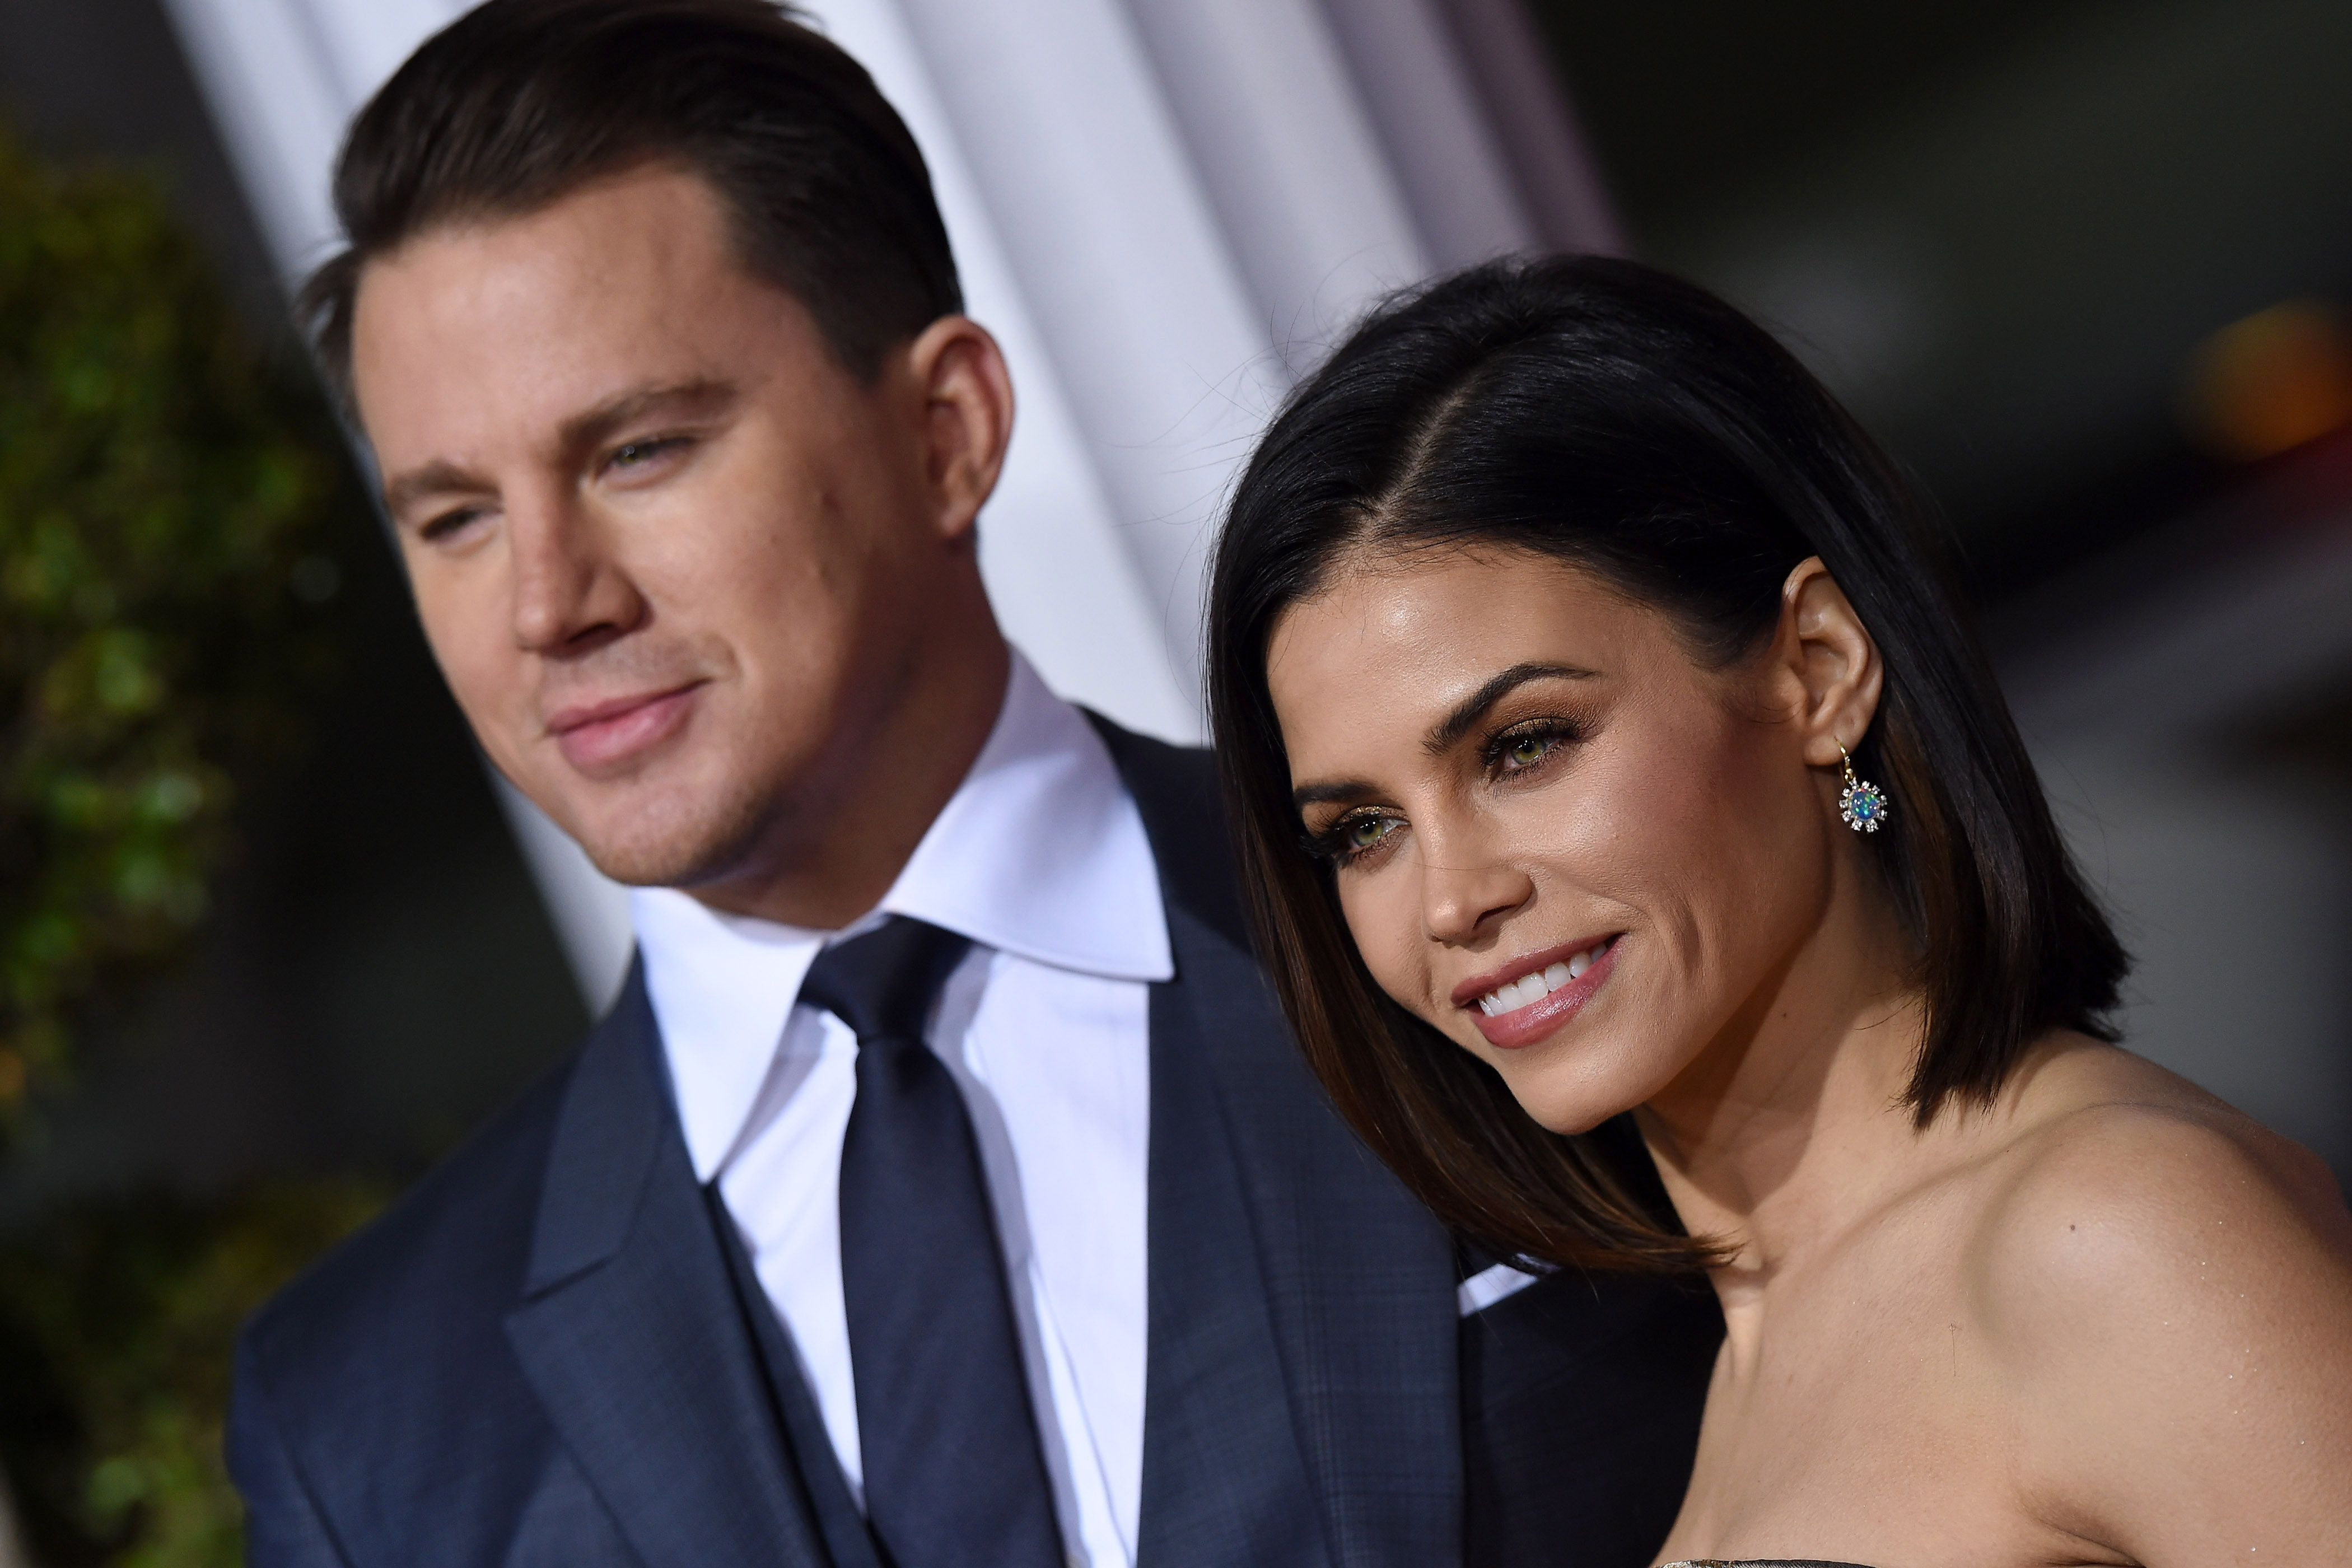 Jenna Dewan Tatum and Channing Tatum have a 4-year-old daughter.